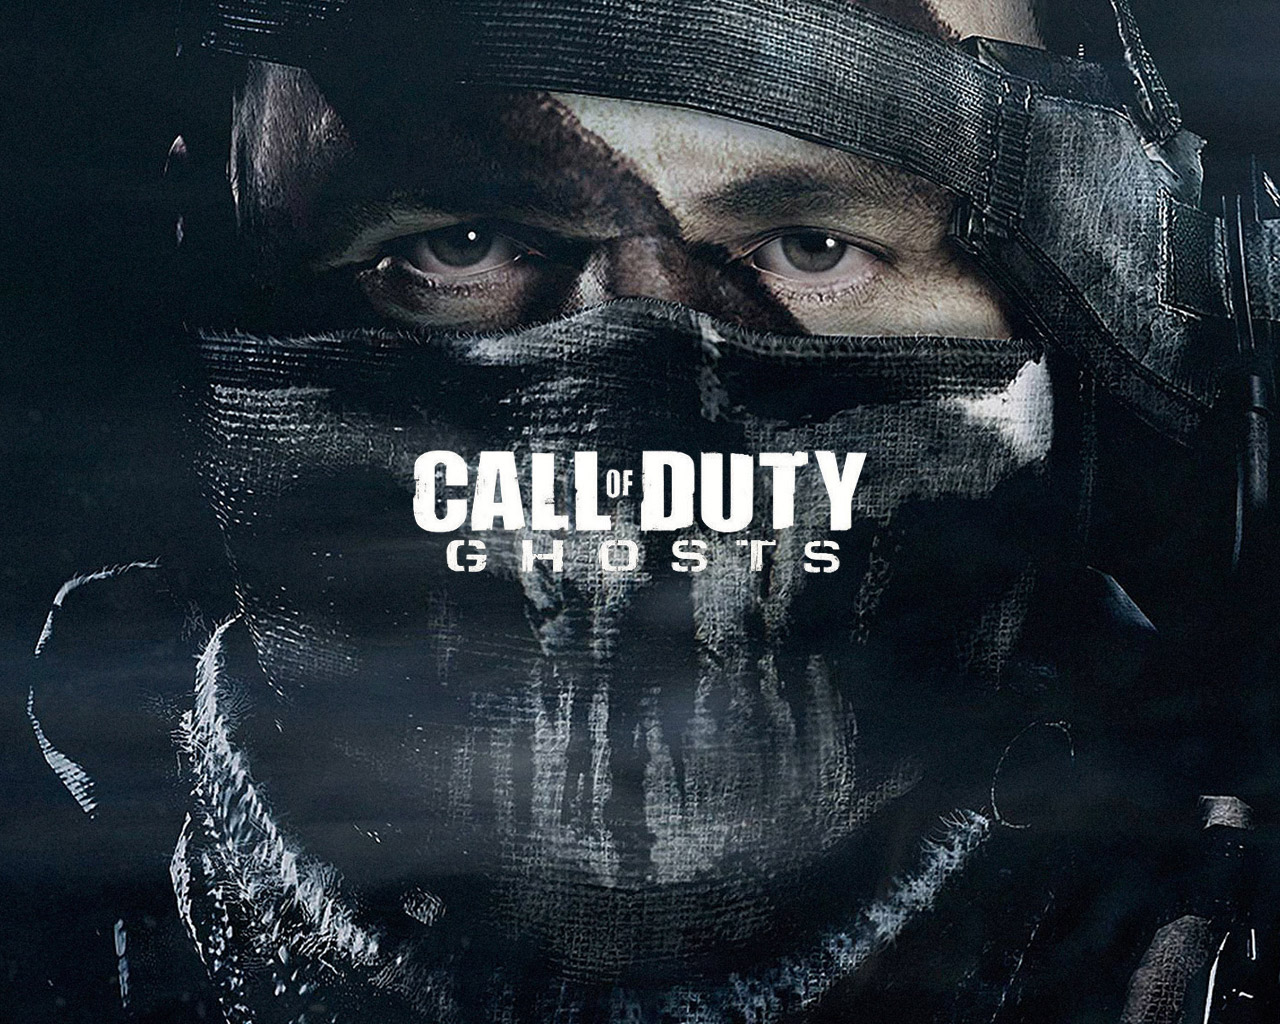 Call of Duty: Ghosts Wallpaper in 1280x1024